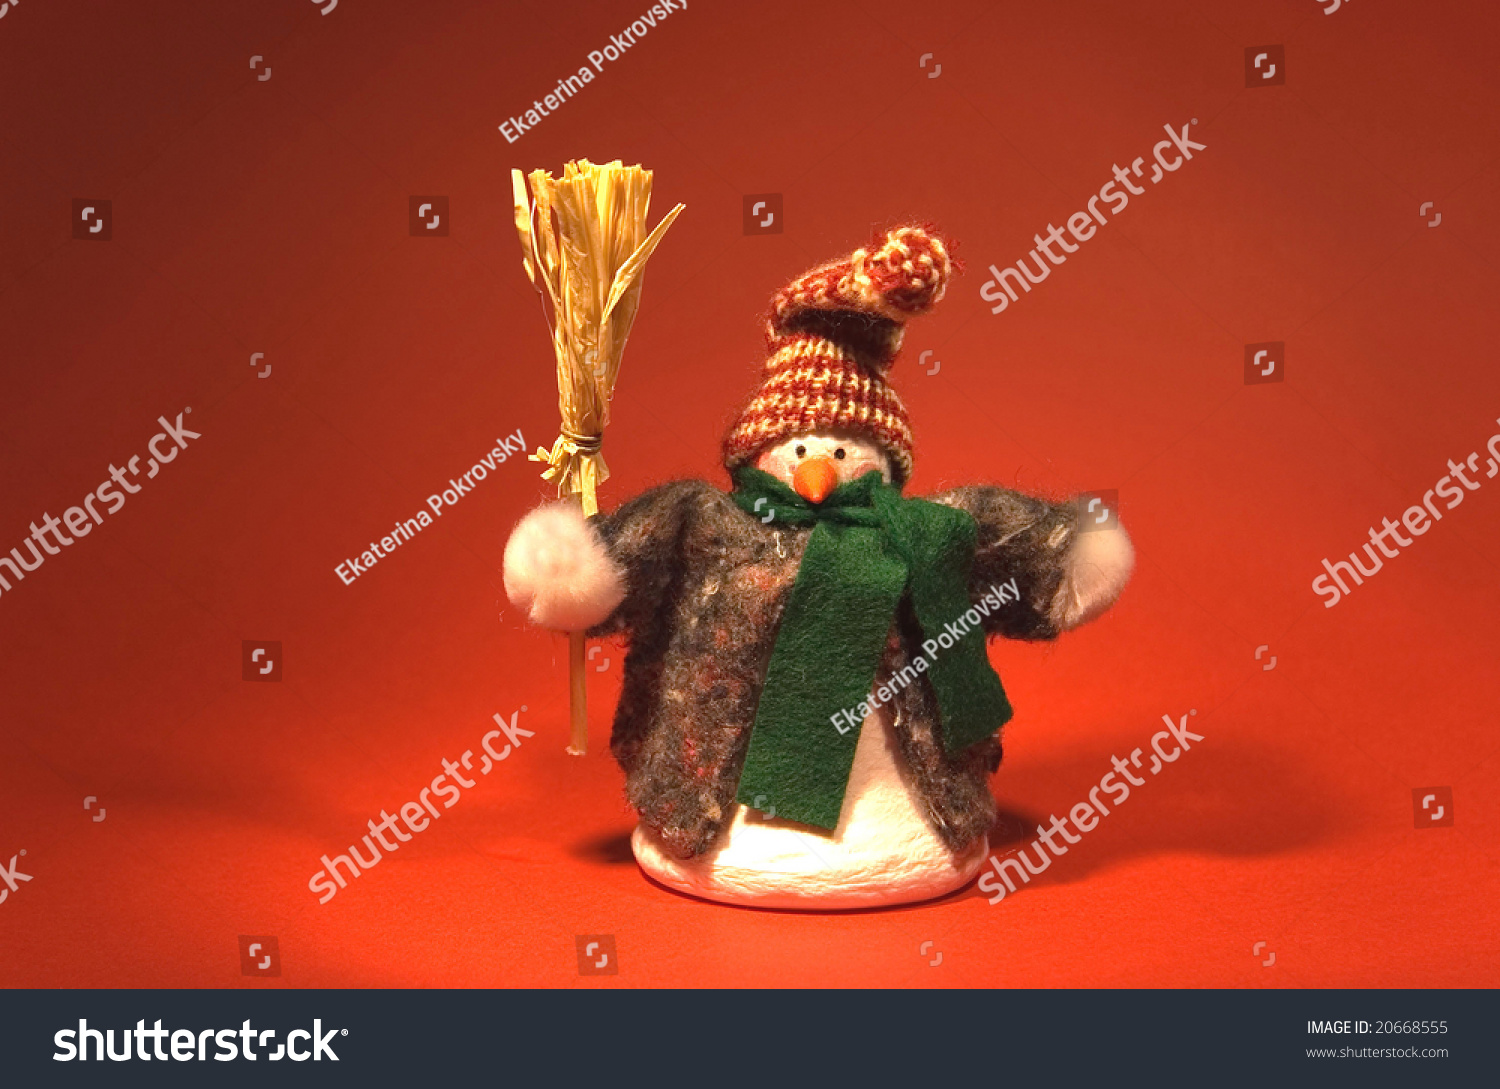 christmas decoration funny toy snowman with a broom - Christmas Broom Decoration